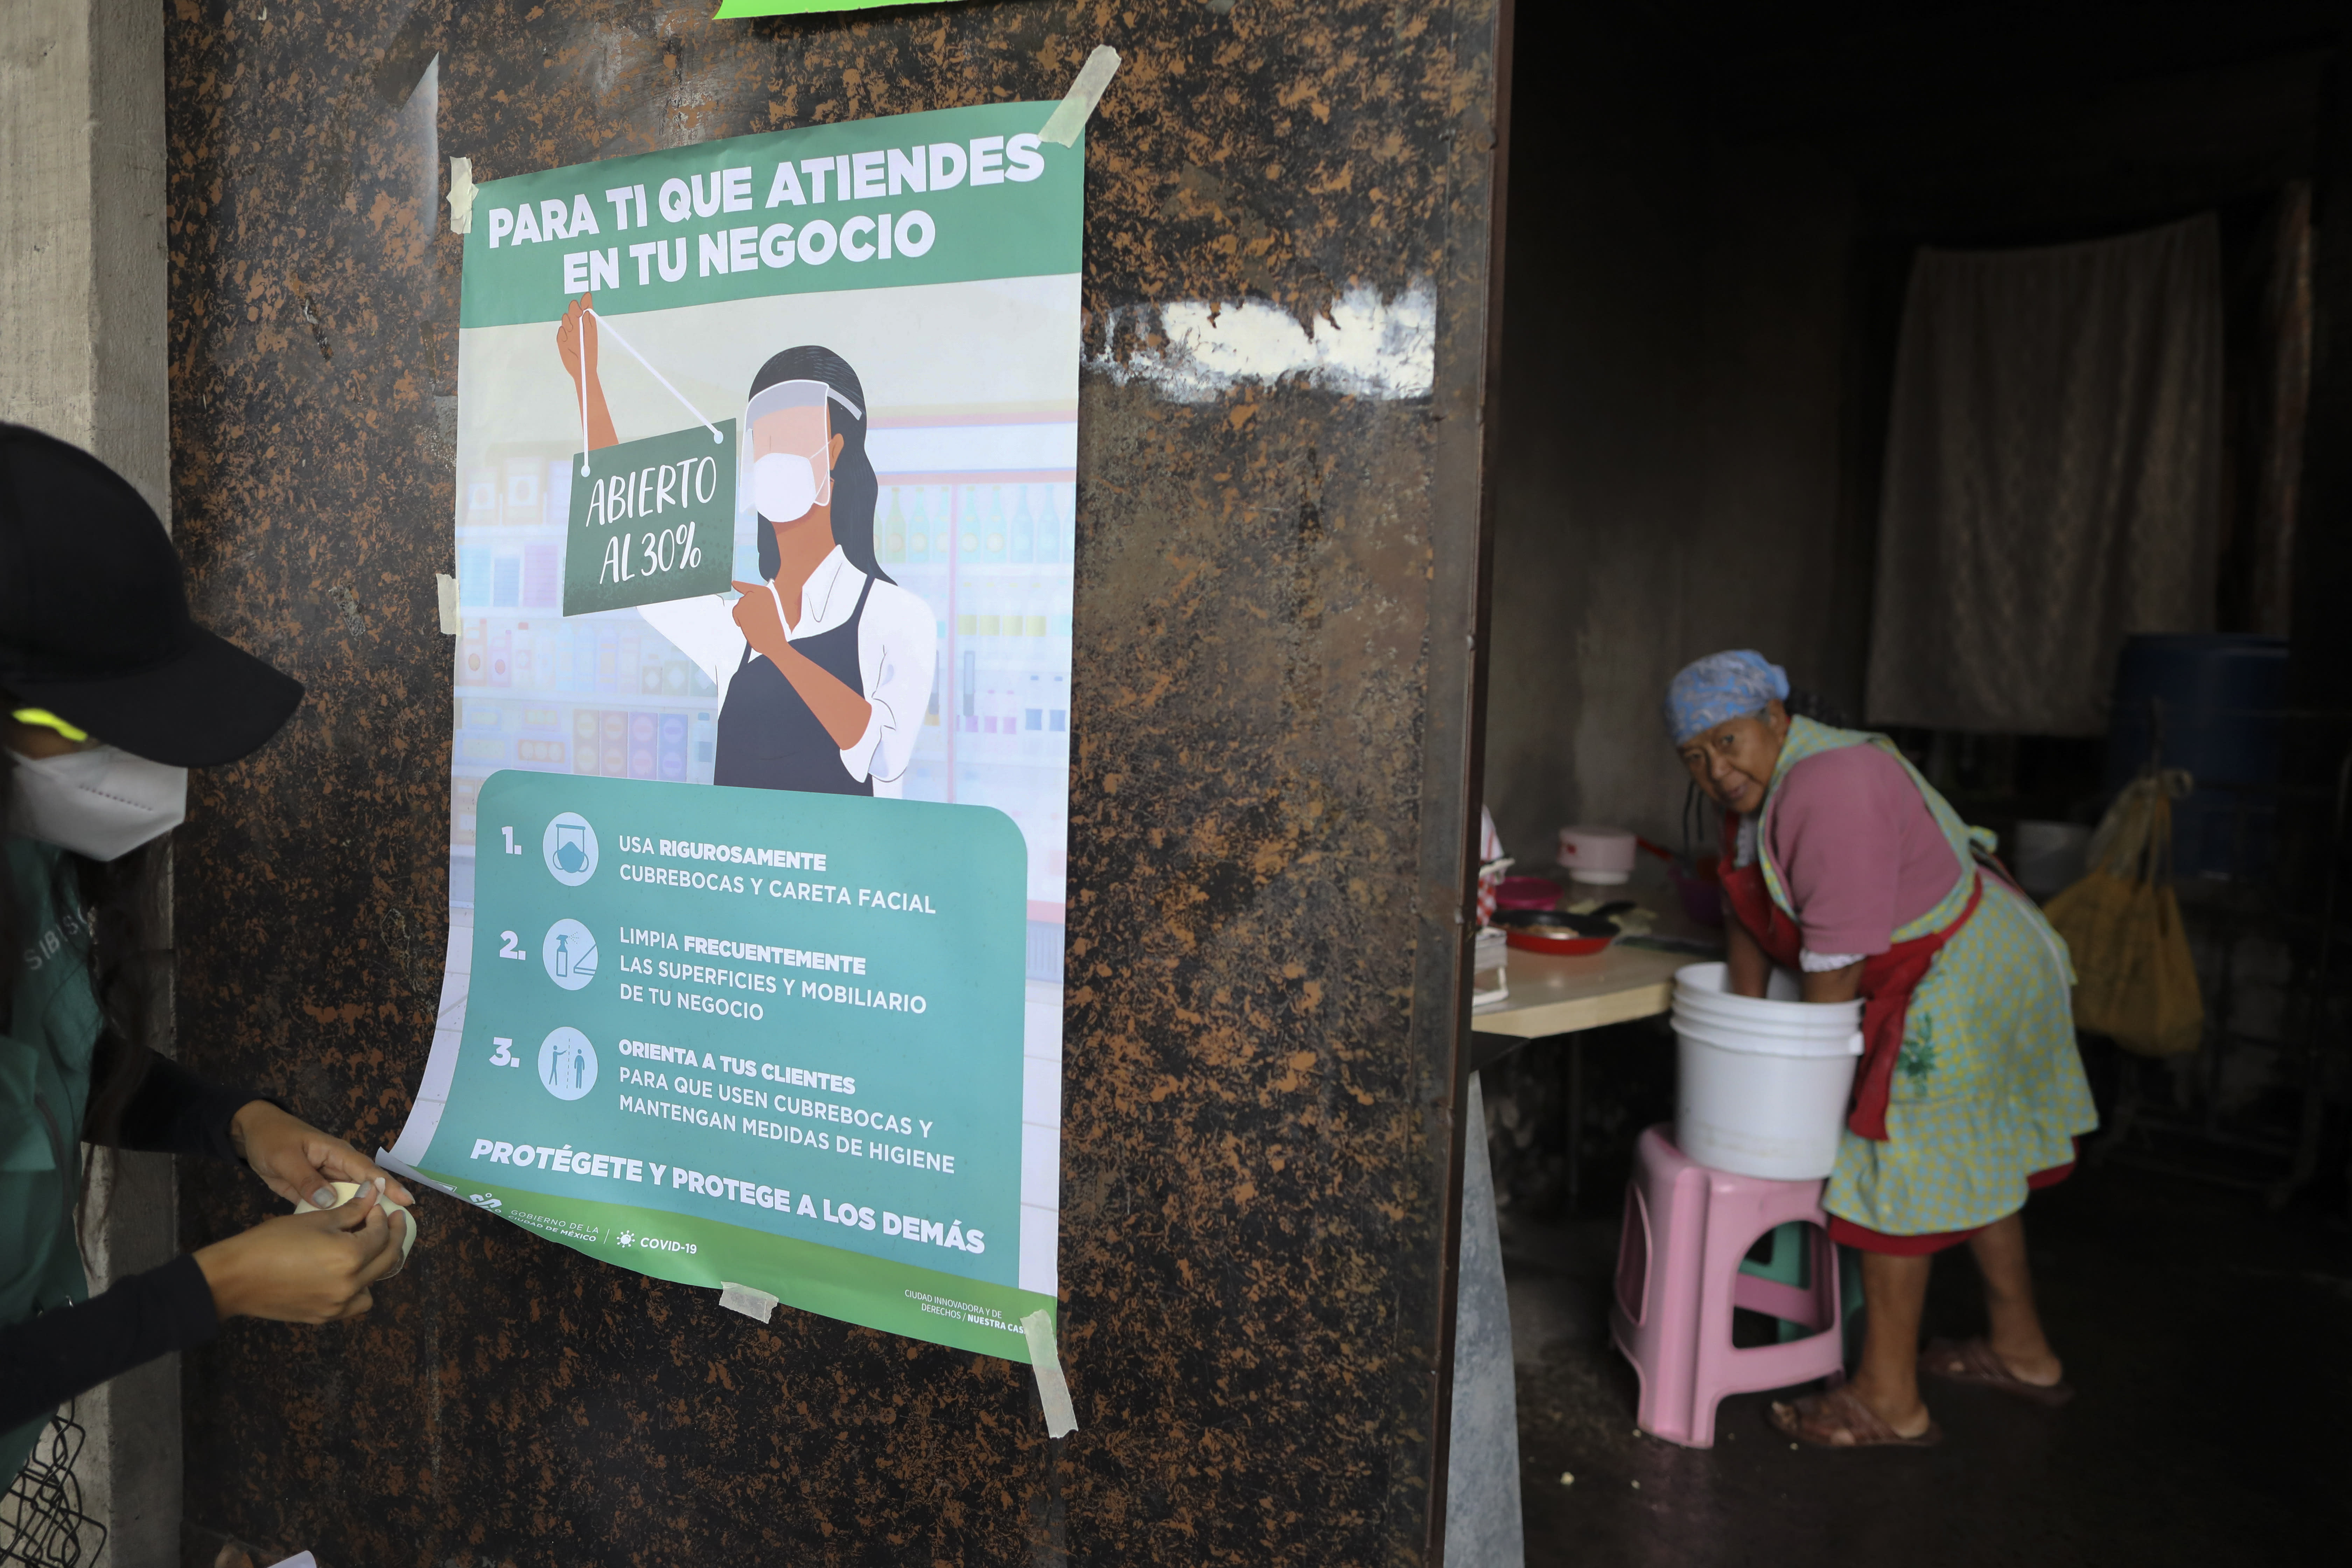 FILE - In this July 21, 2020 file photo, a city health department worker hangs a poster describing the guidelines for businesses operating during the coronavirus pandemic, as a woman prepares to make tortillas inside a small business, in San Mateo Xalpa in the Xochimilco district of Mexico City. Mexican health officials have been holding daily televised news conferences about the pandemic for months, but they have given mixed messages on the necessity of wearing a mask. (AP Photo/Rebecca Blackwell, File)